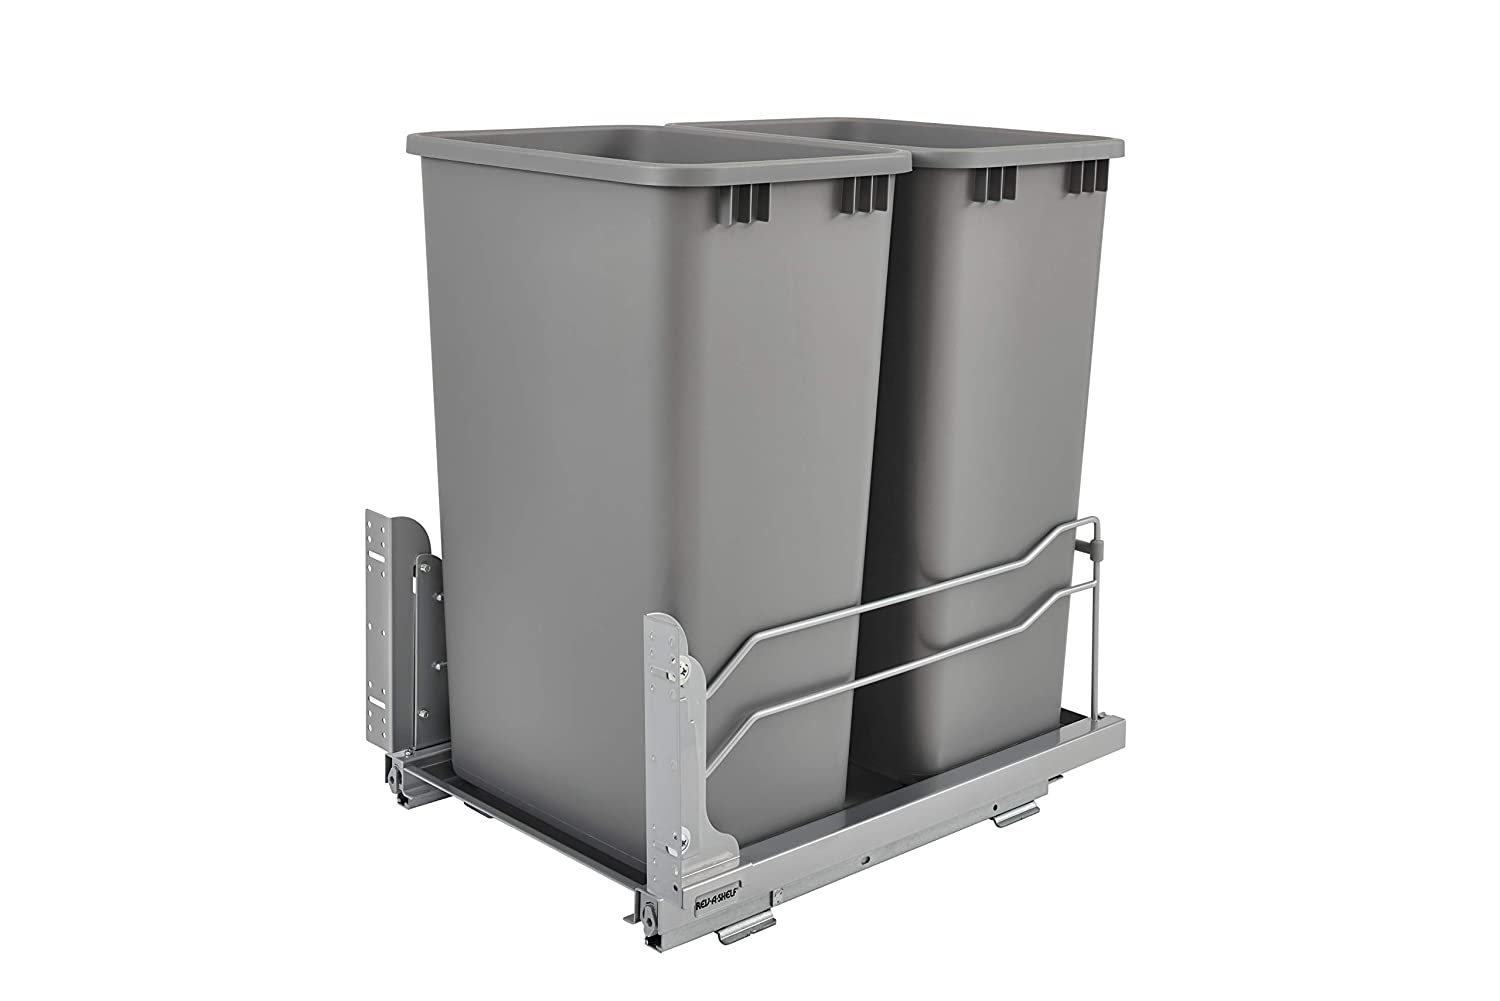 Rev-A-Shelf - 53WC-2150SCDM-217 - Double 50 Qt. Pull-Out Silver Waste Container with Soft-Close Slides